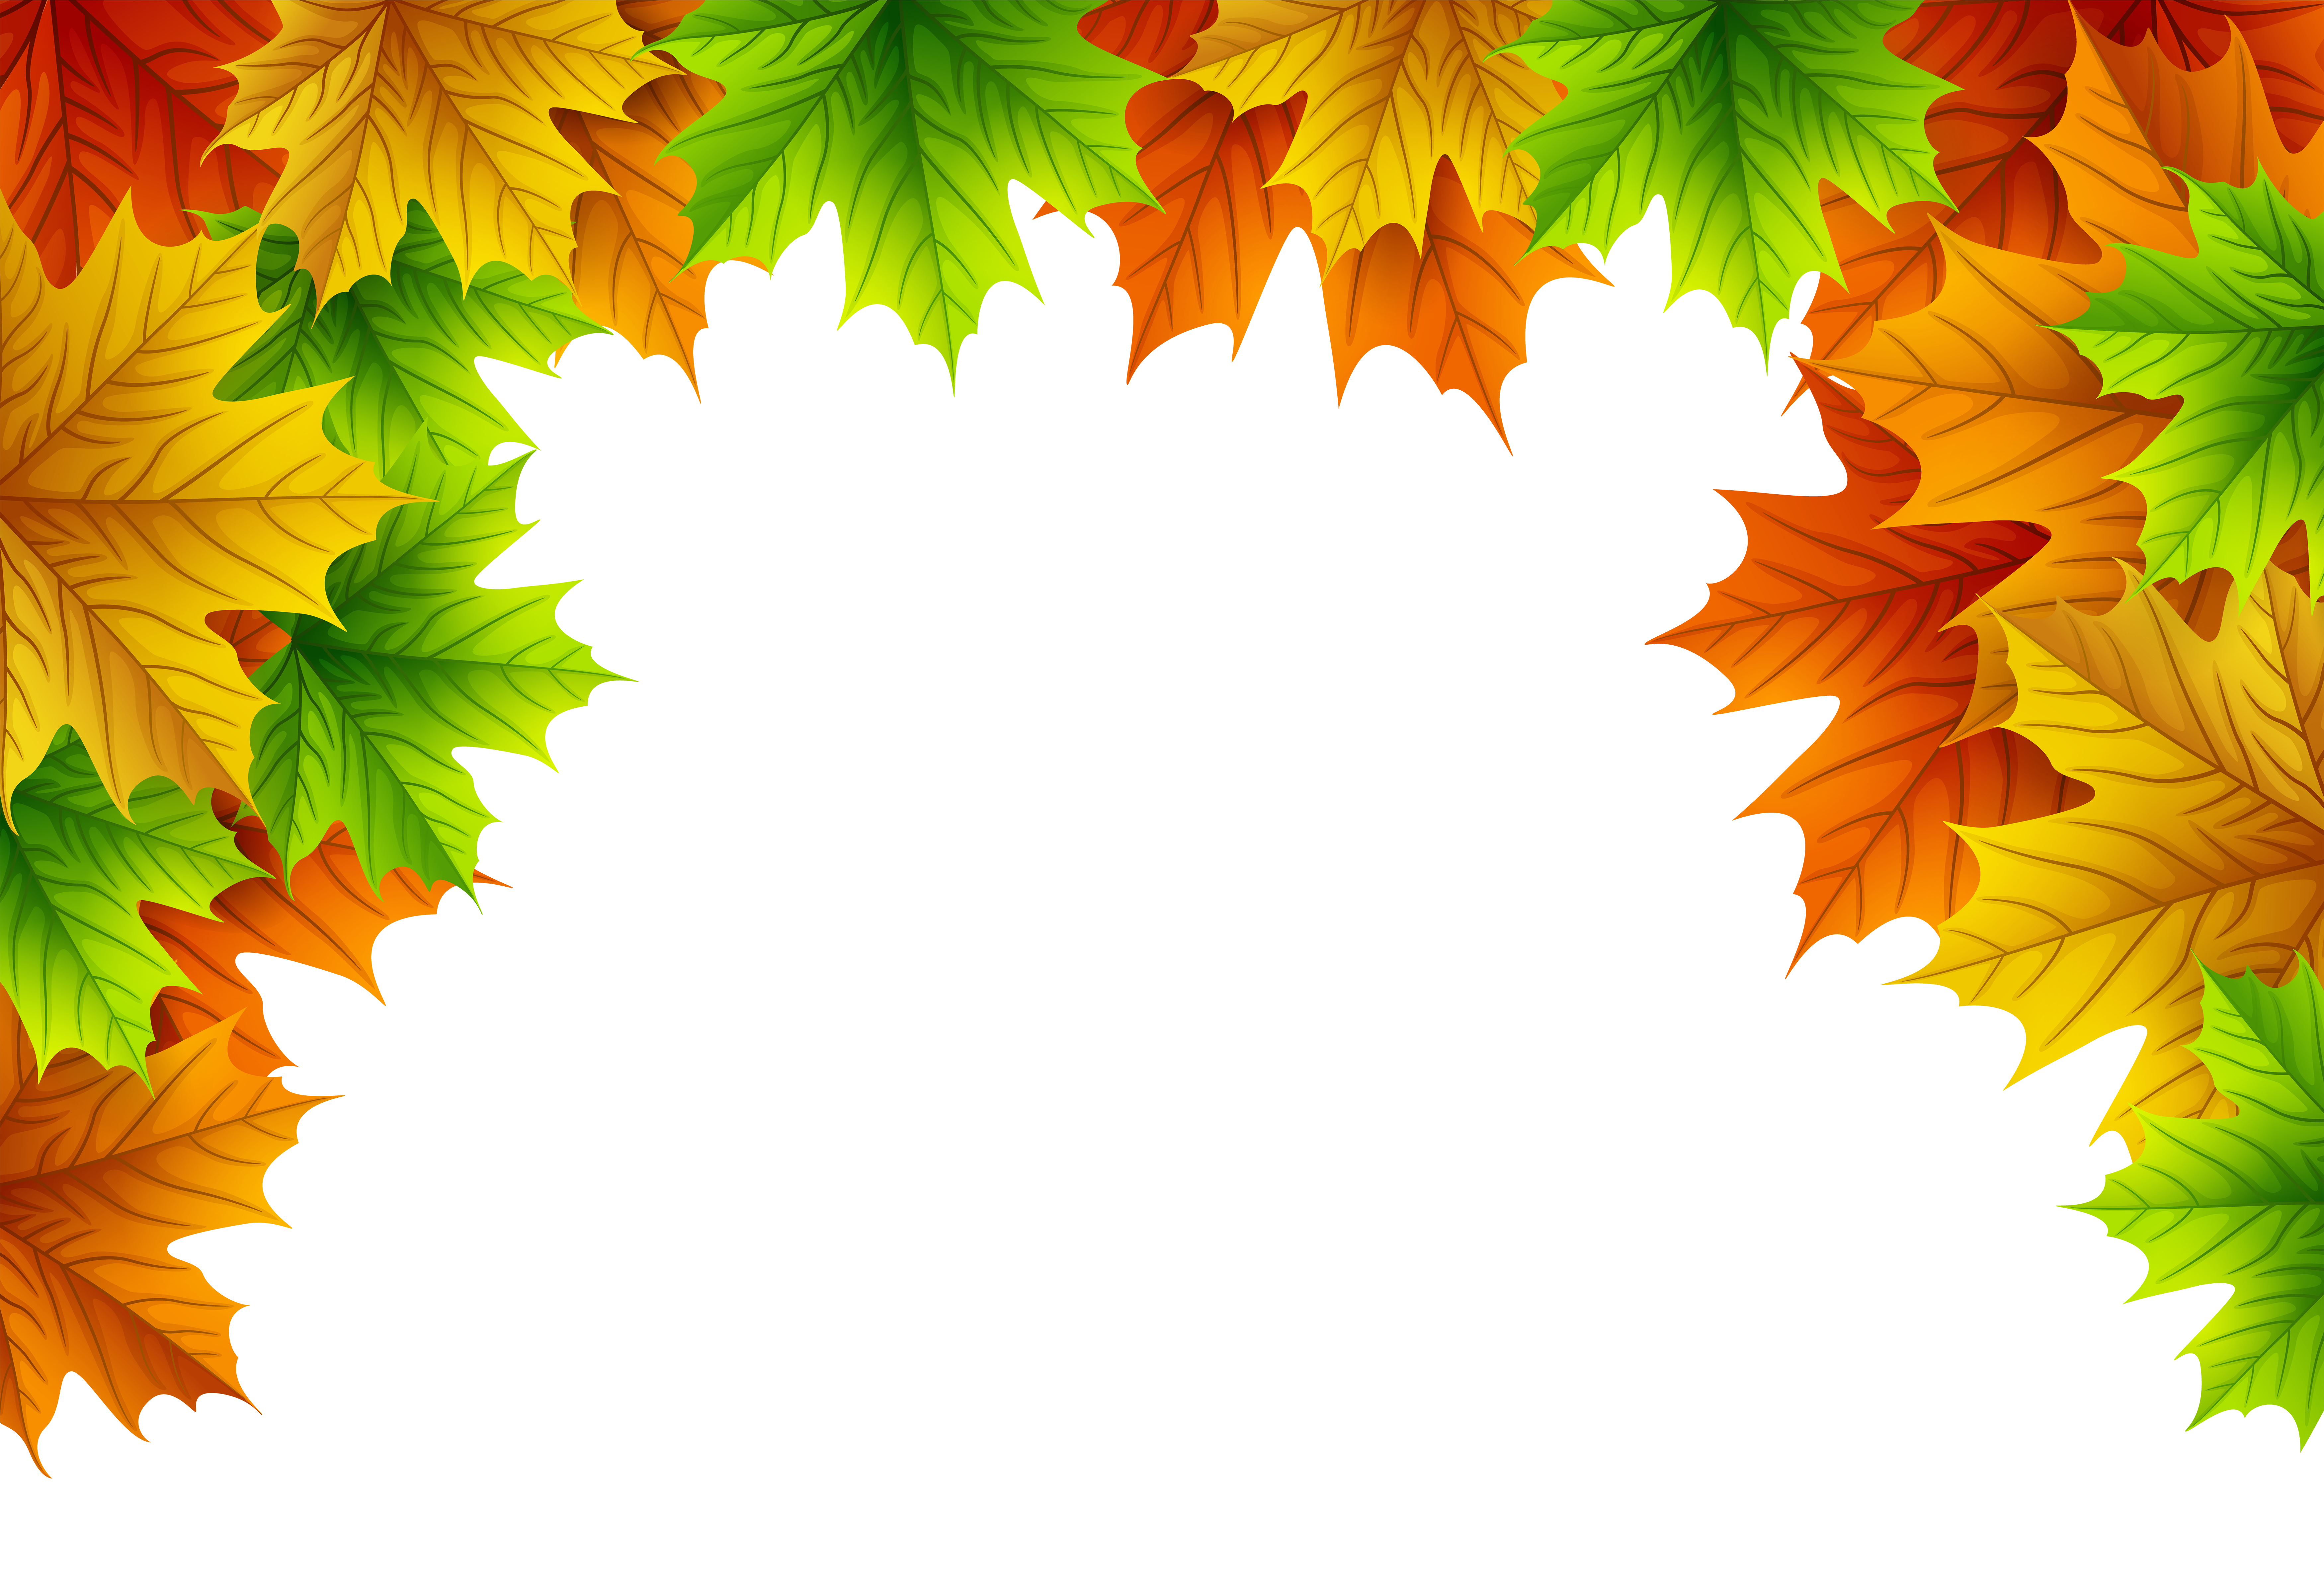 Autumn leaves border png. Decorative top image gallery